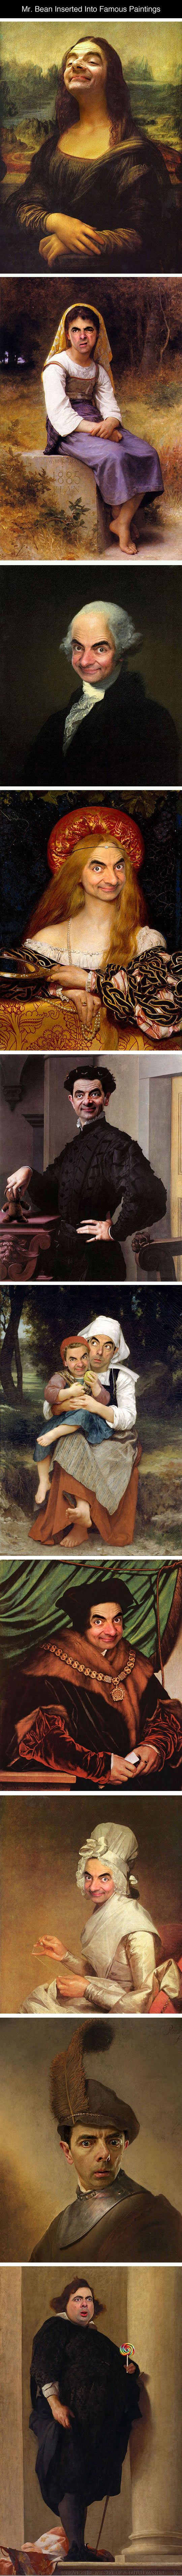 Mr. Bean Art